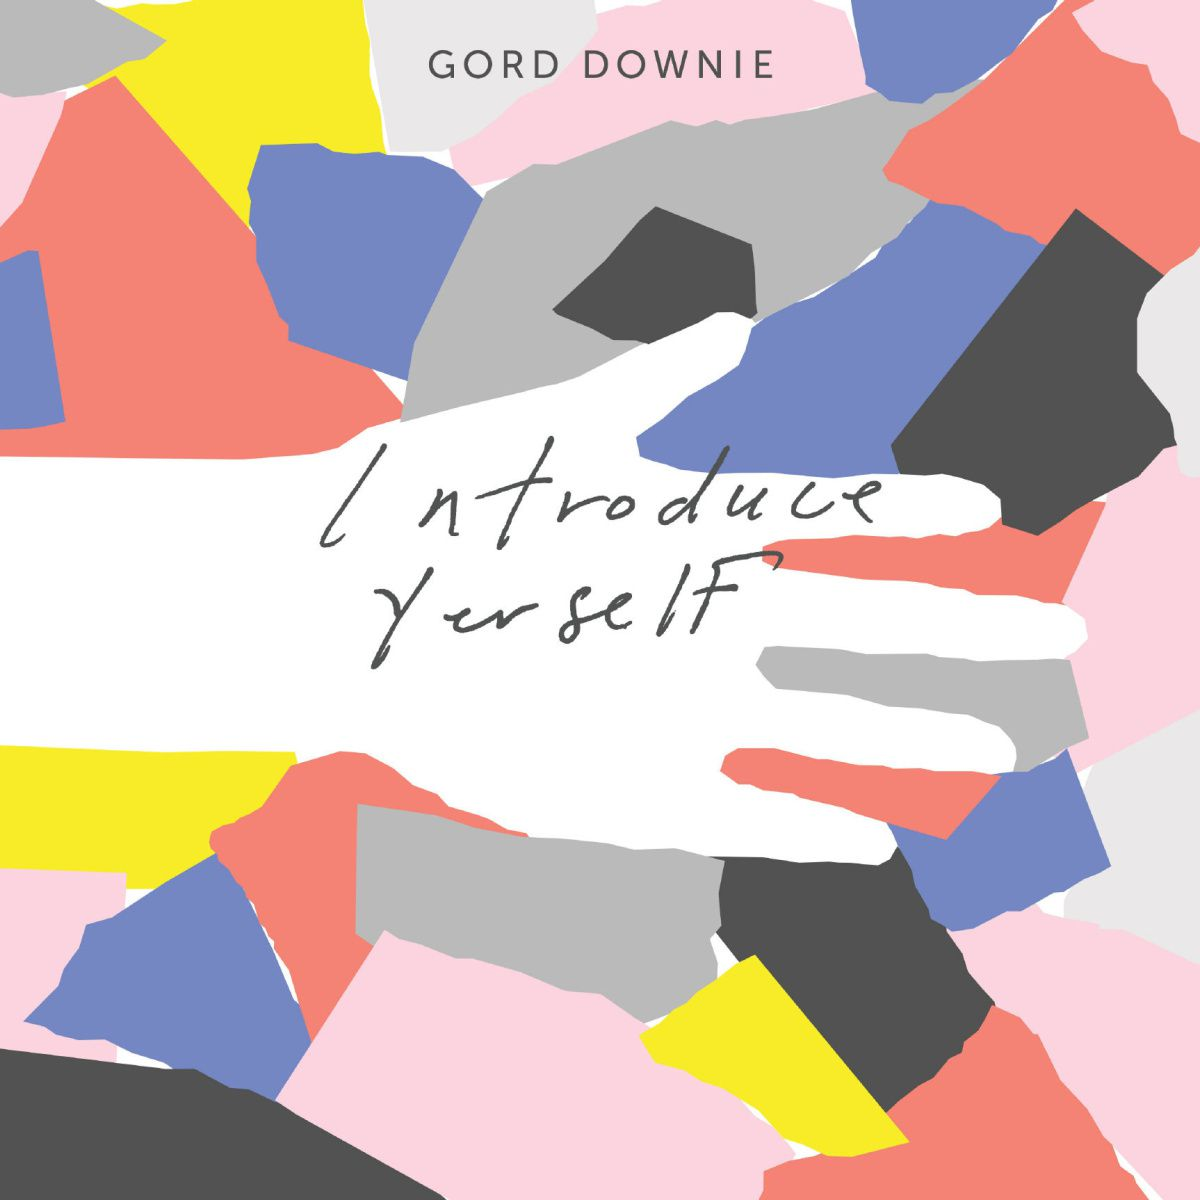 introyer Gord Downies posthumous new album, Introduce Yerself, released: Stream/download